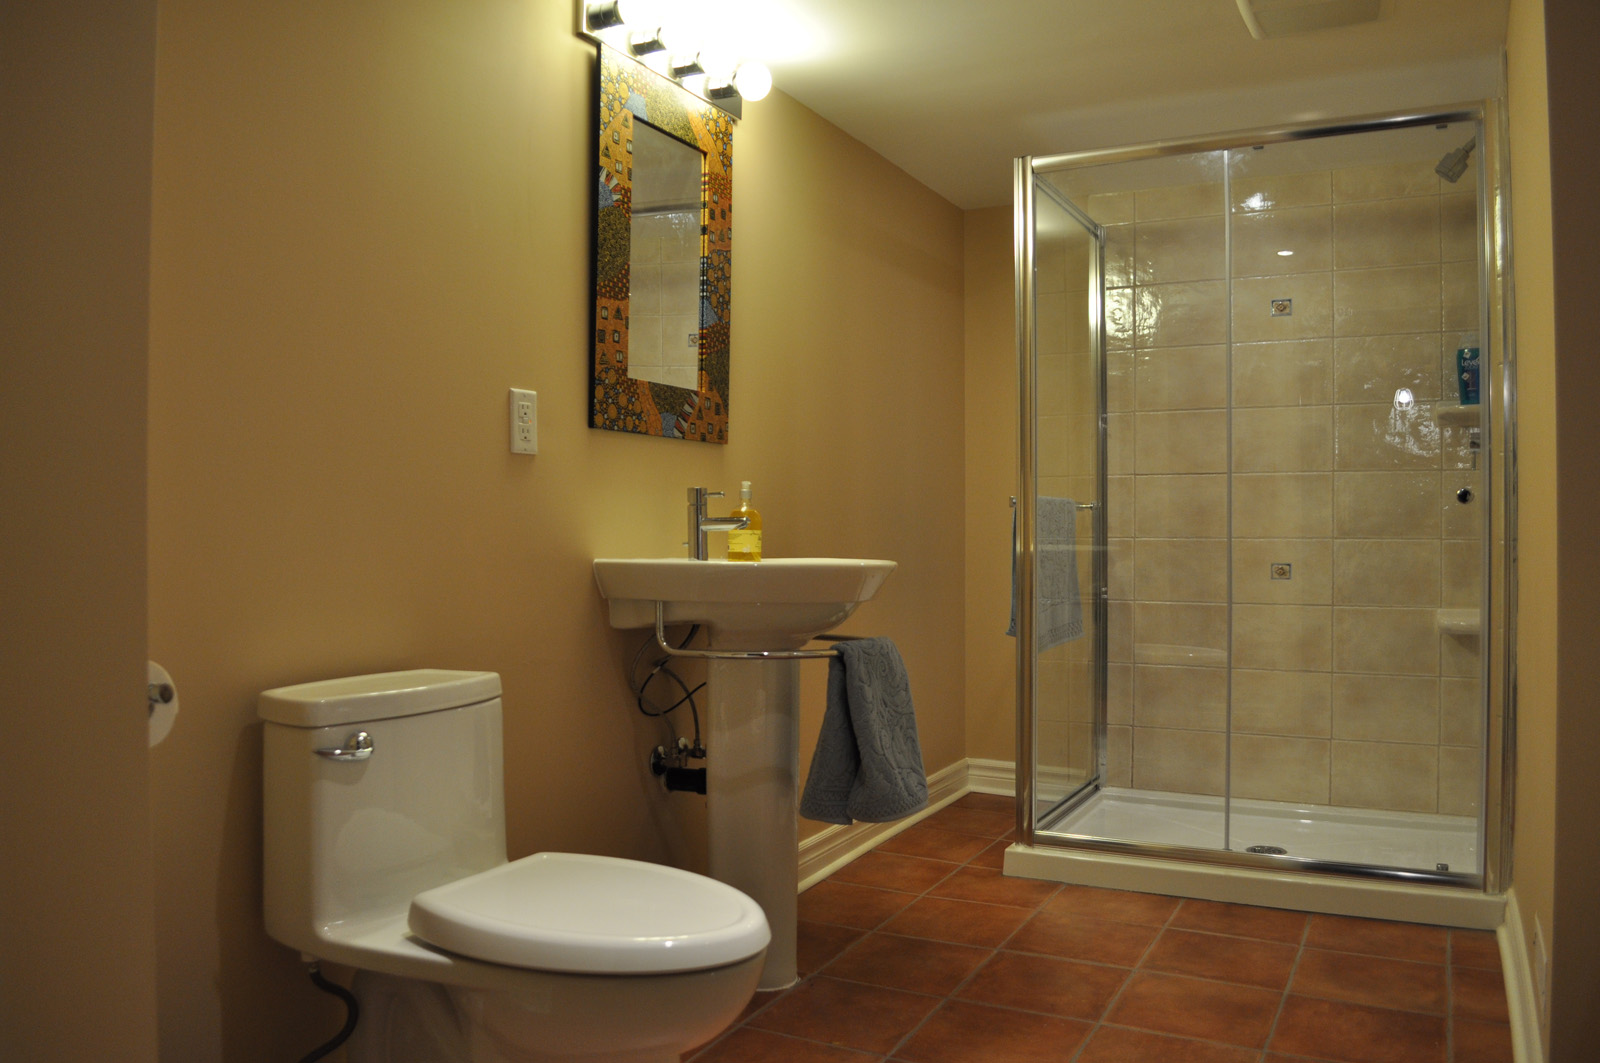 Superieur Amusing Design Of The Basement Bathroom Ideas Wit Brown Wooden Floor Ideas  Added With White Toilets